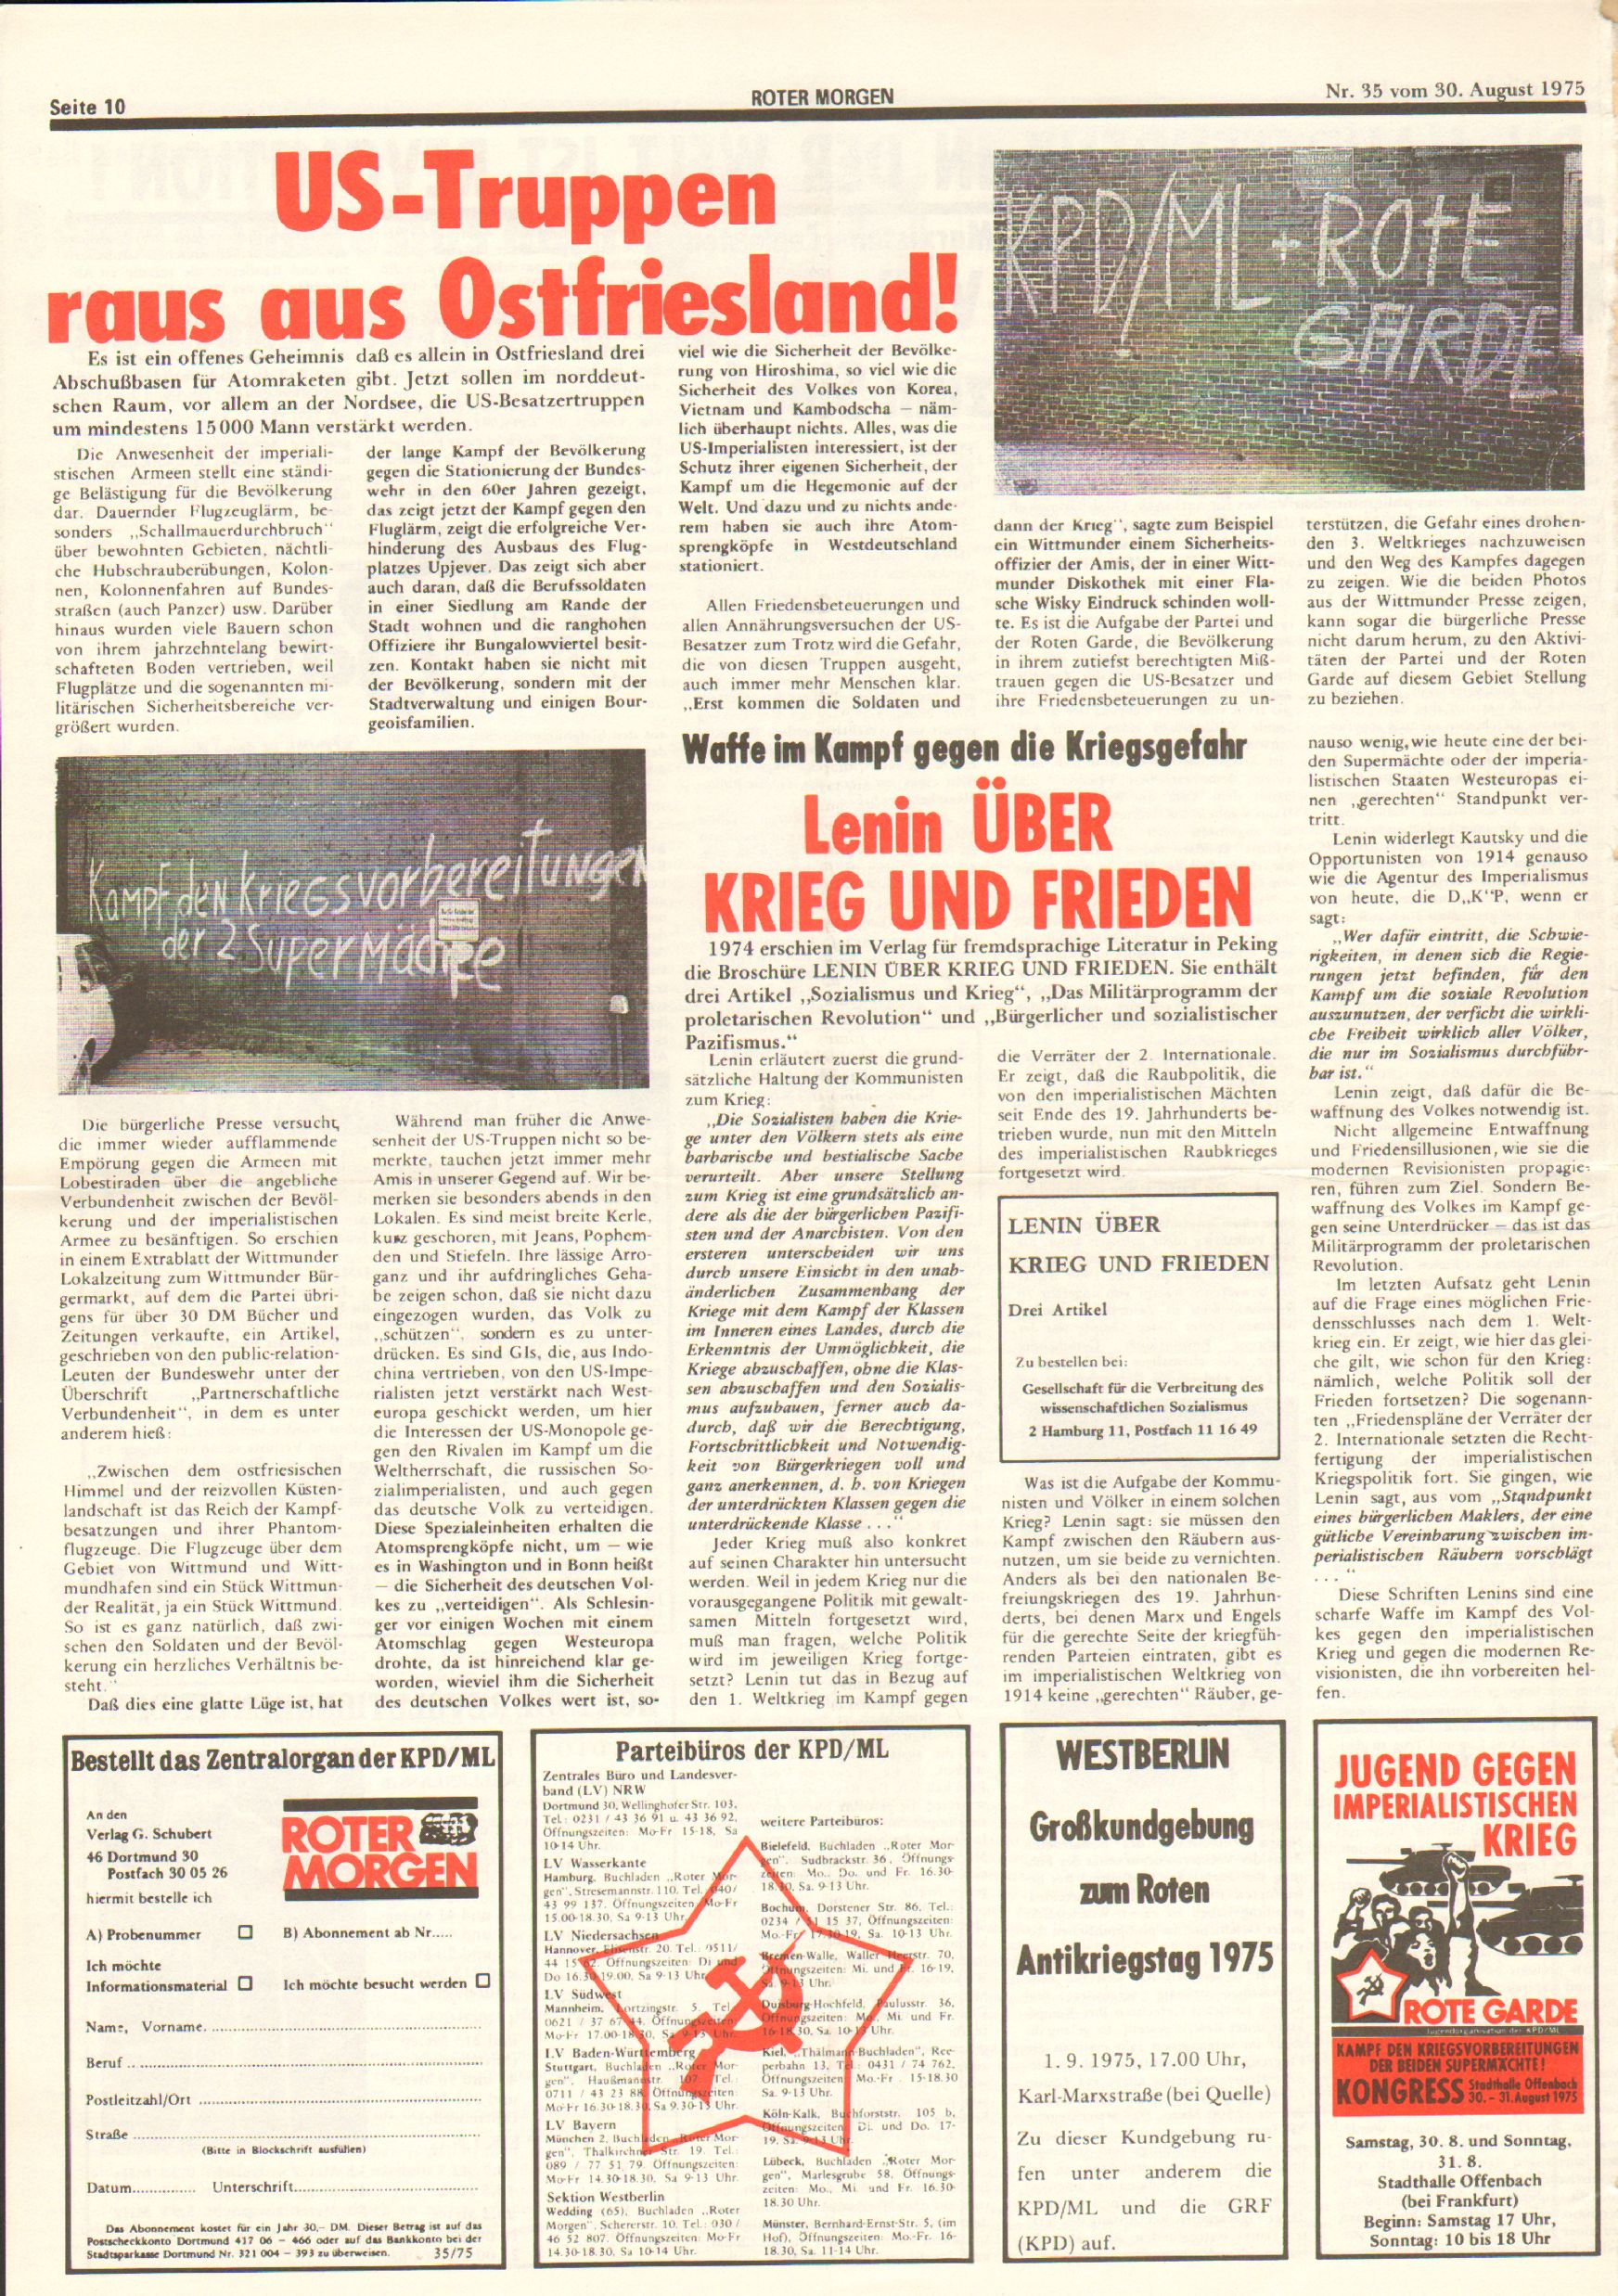 Roter Morgen, 9. Jg., 30. August 1975, Nr. 35, Seite 10